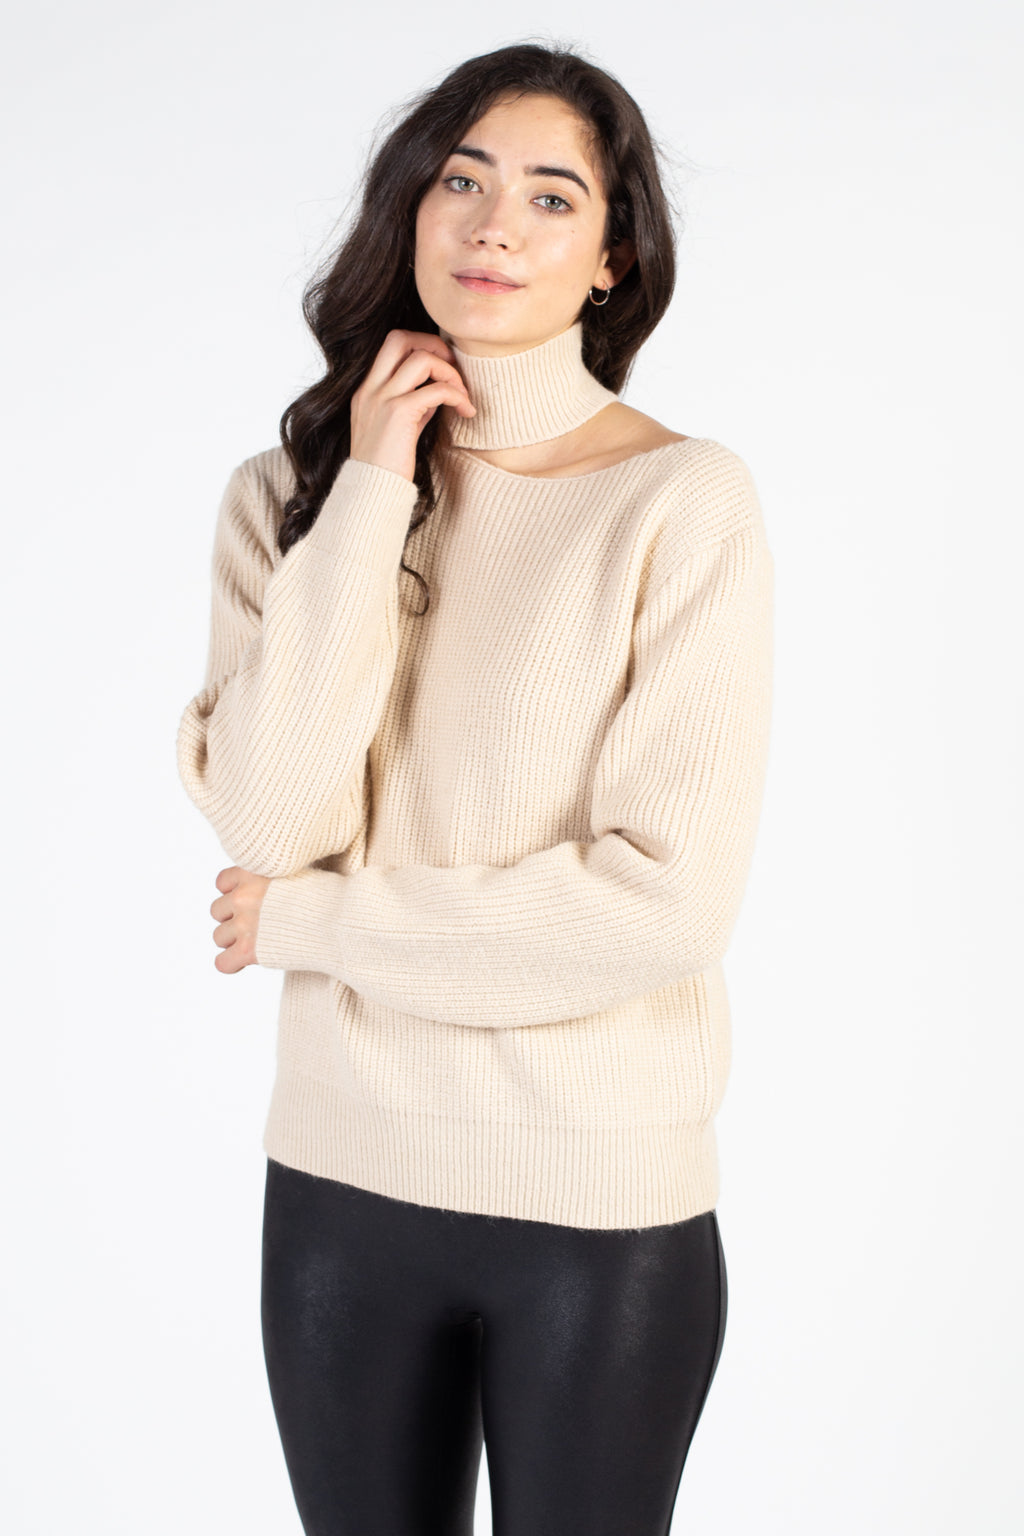 Ribbed Knit Mock Neck Cut Out Sweater - honey